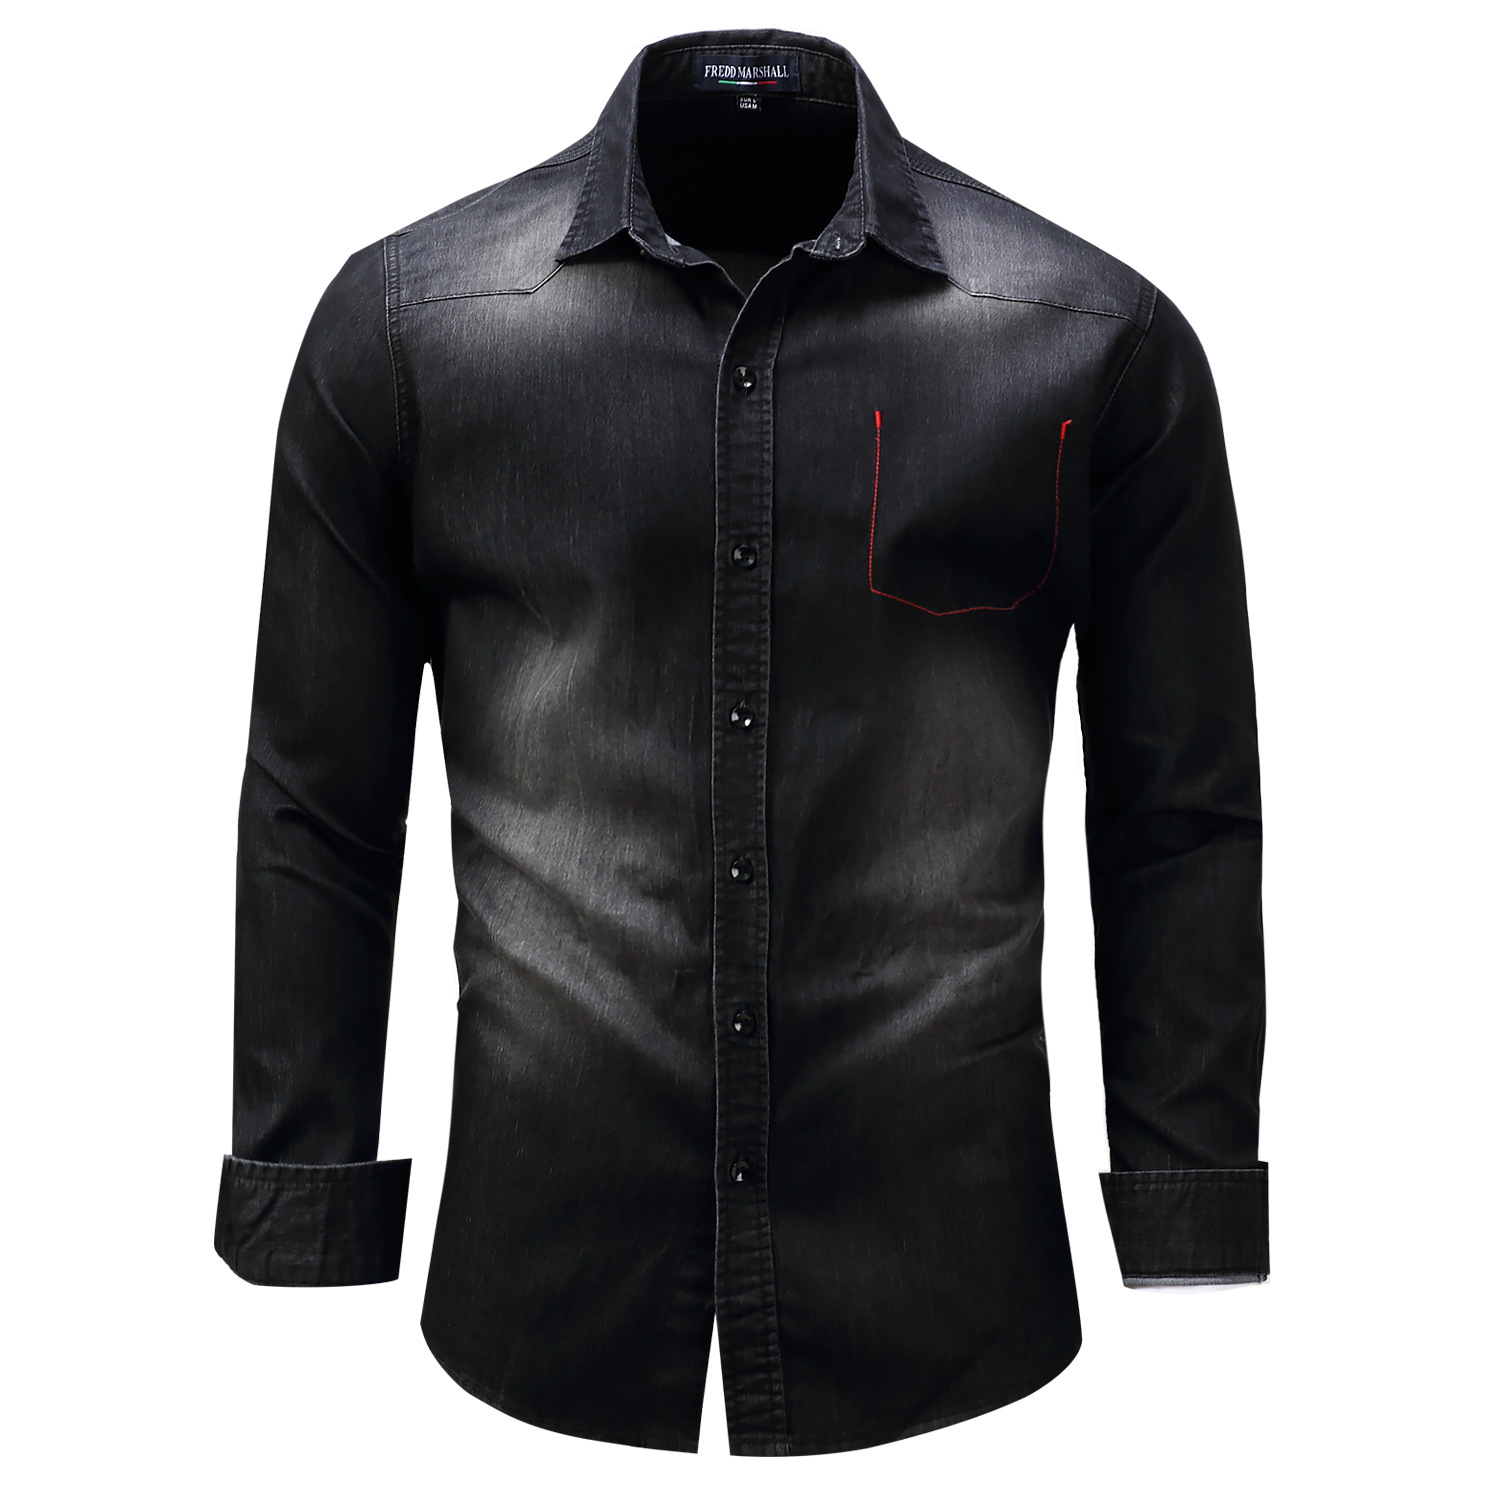 2018 new large size mens long sleeve lapel shirt black cotton denim shirt mens youth military style Cardiganshirts Combination ...